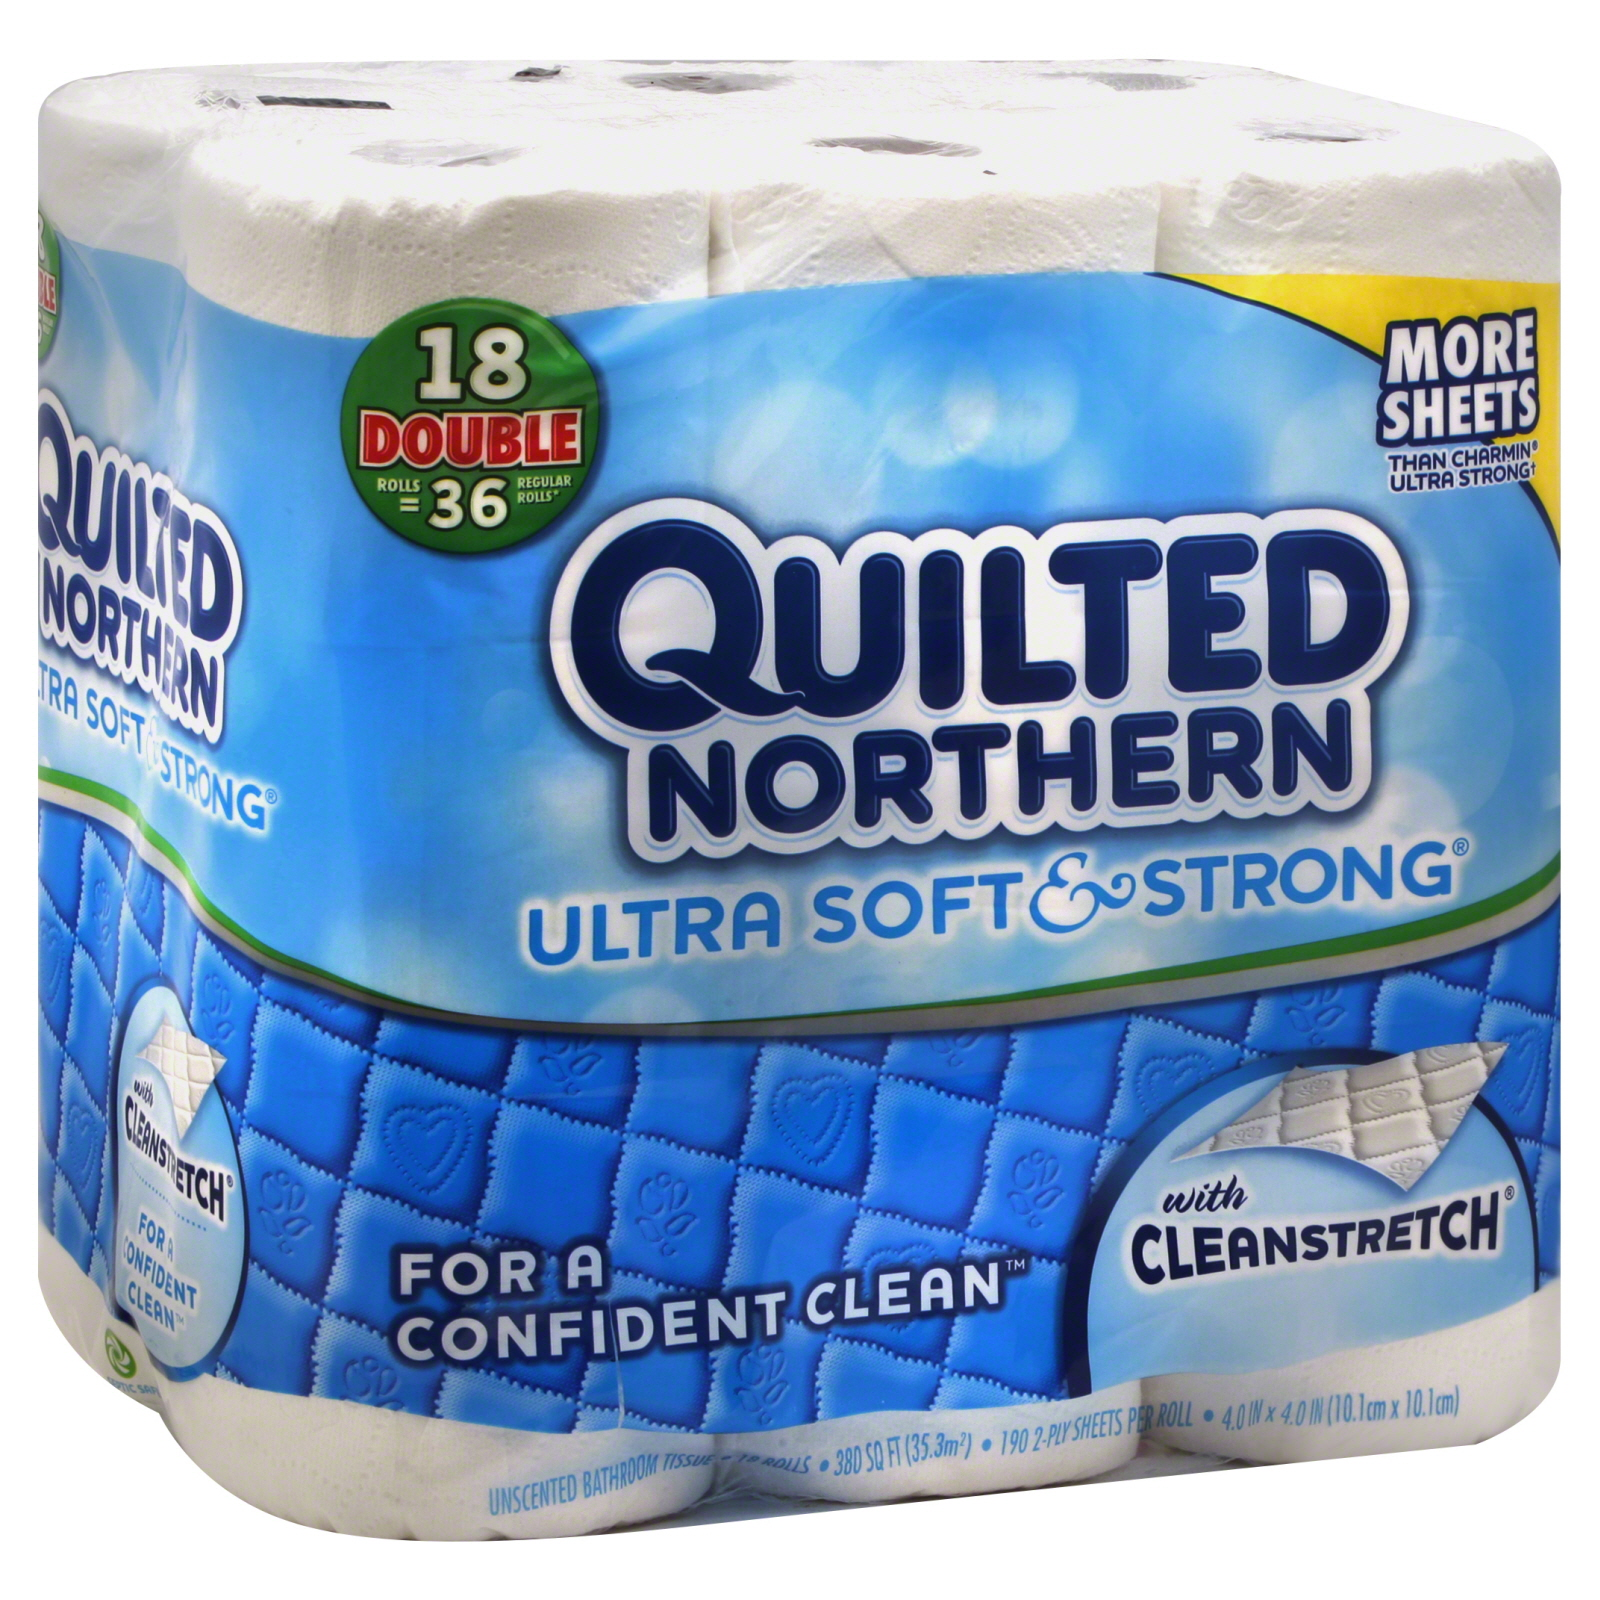 Quilted Northern Ultra Soft & Strong Bathroom Tissue, Unscented, Double Rolls, 2-Ply, 18 rolls